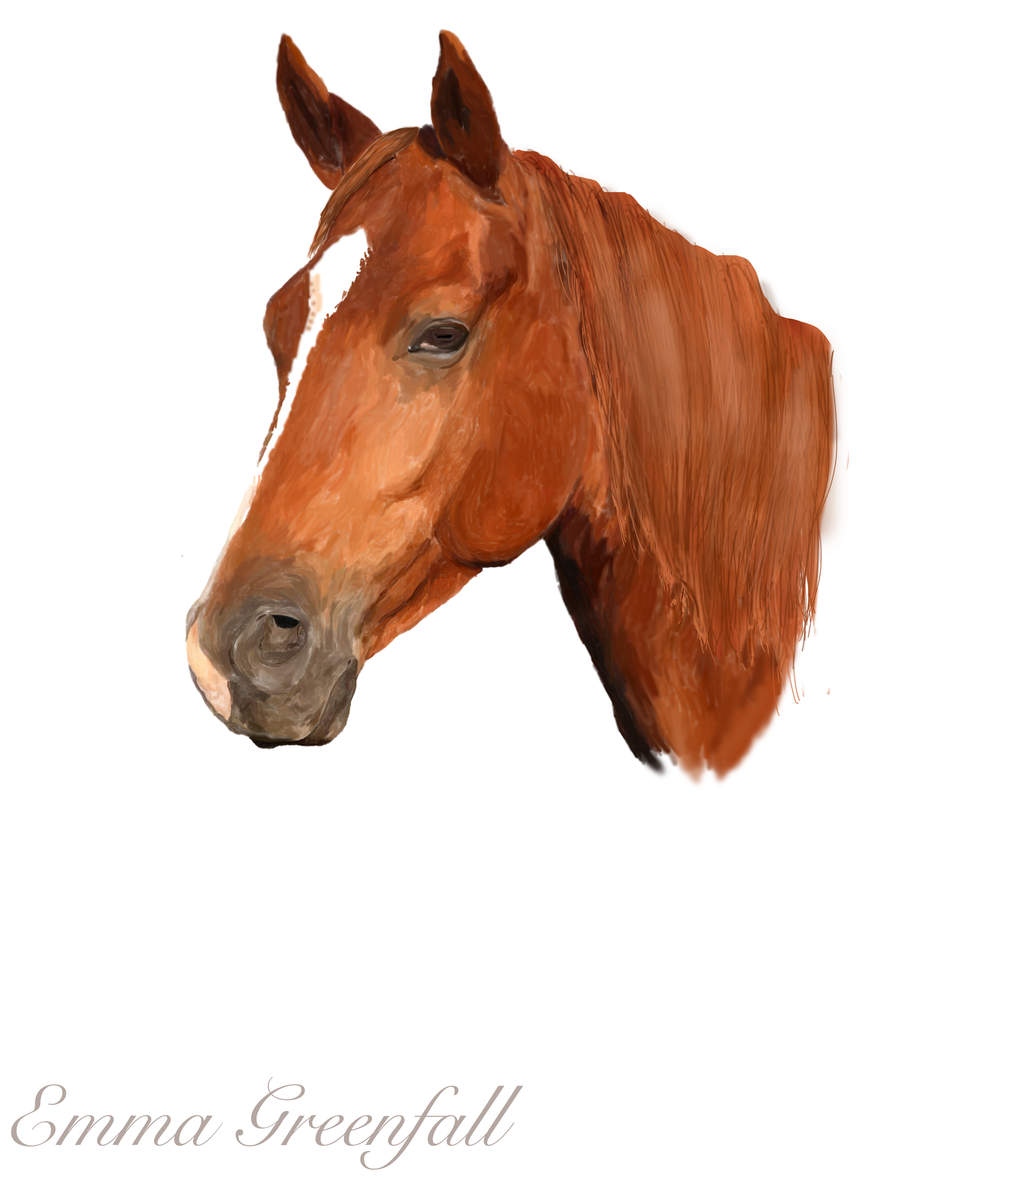 Horse Head By Emmagreenfall Horse Head By Emmagreenfall - Horse Head, Transparent background PNG HD thumbnail